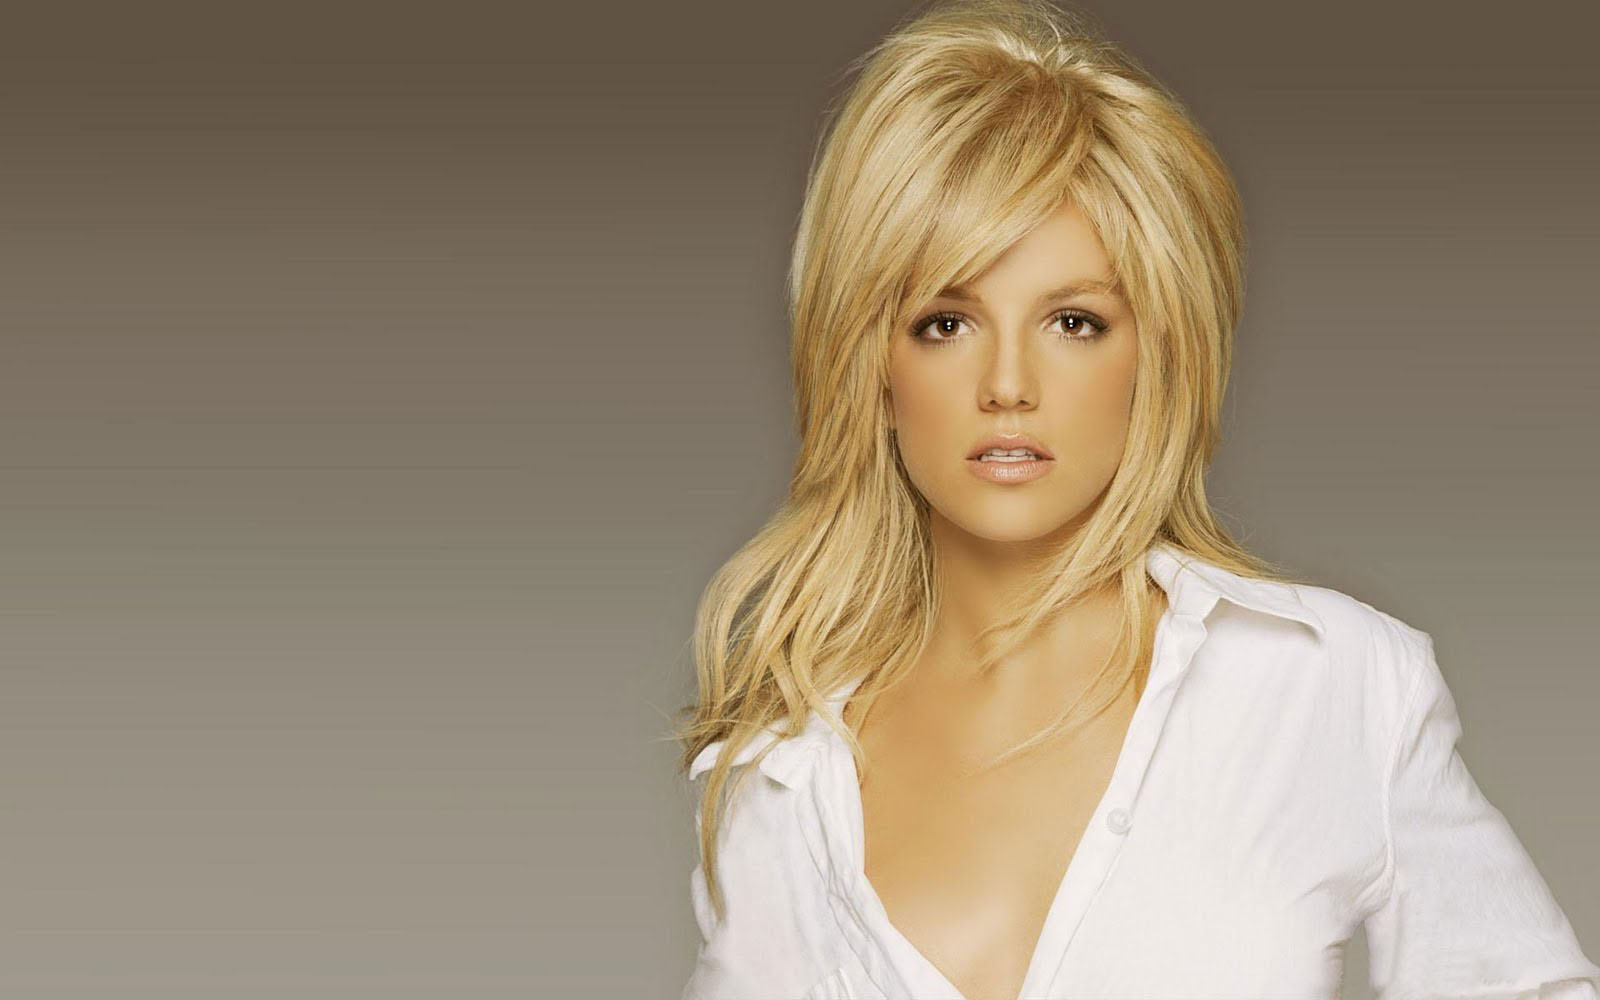 Britney Spears Hair Styles: Fashion Apparel 2012: Long Hairstyles 2012